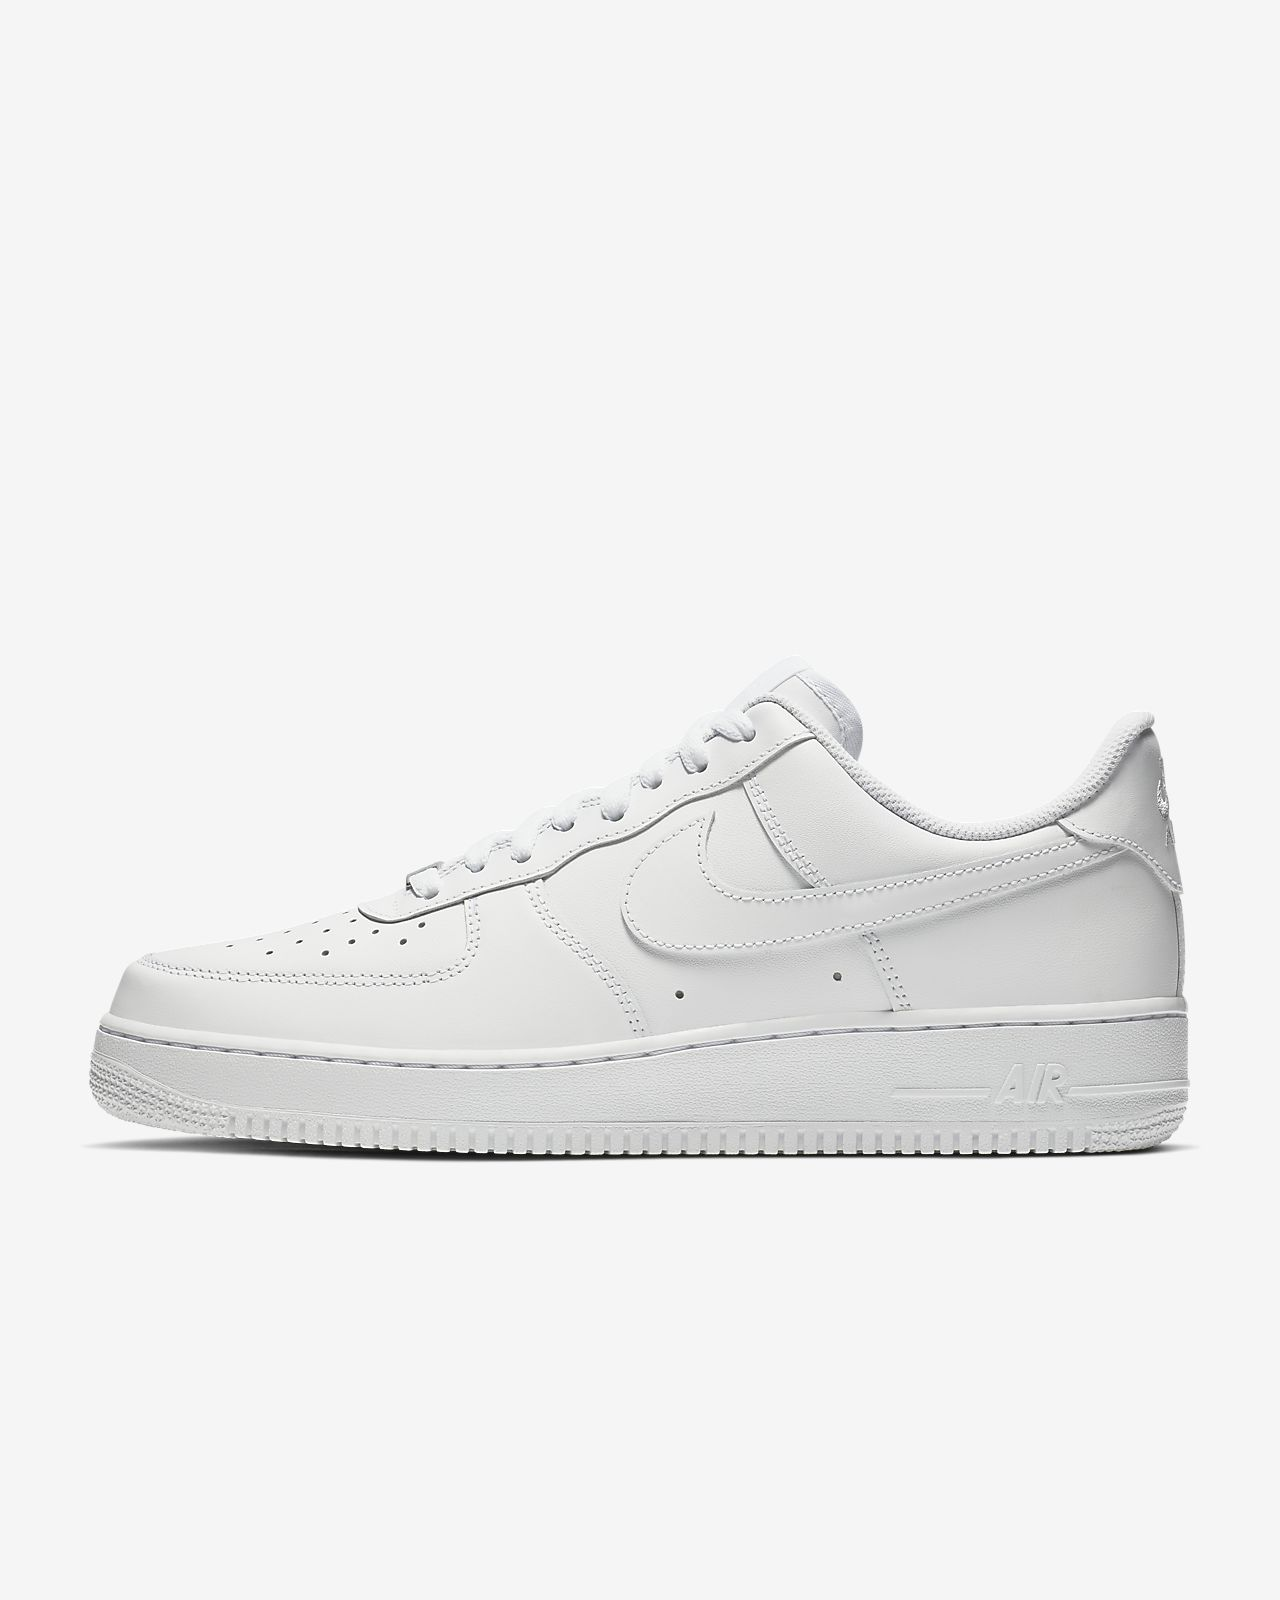 air force 1 jordan shoes men nz